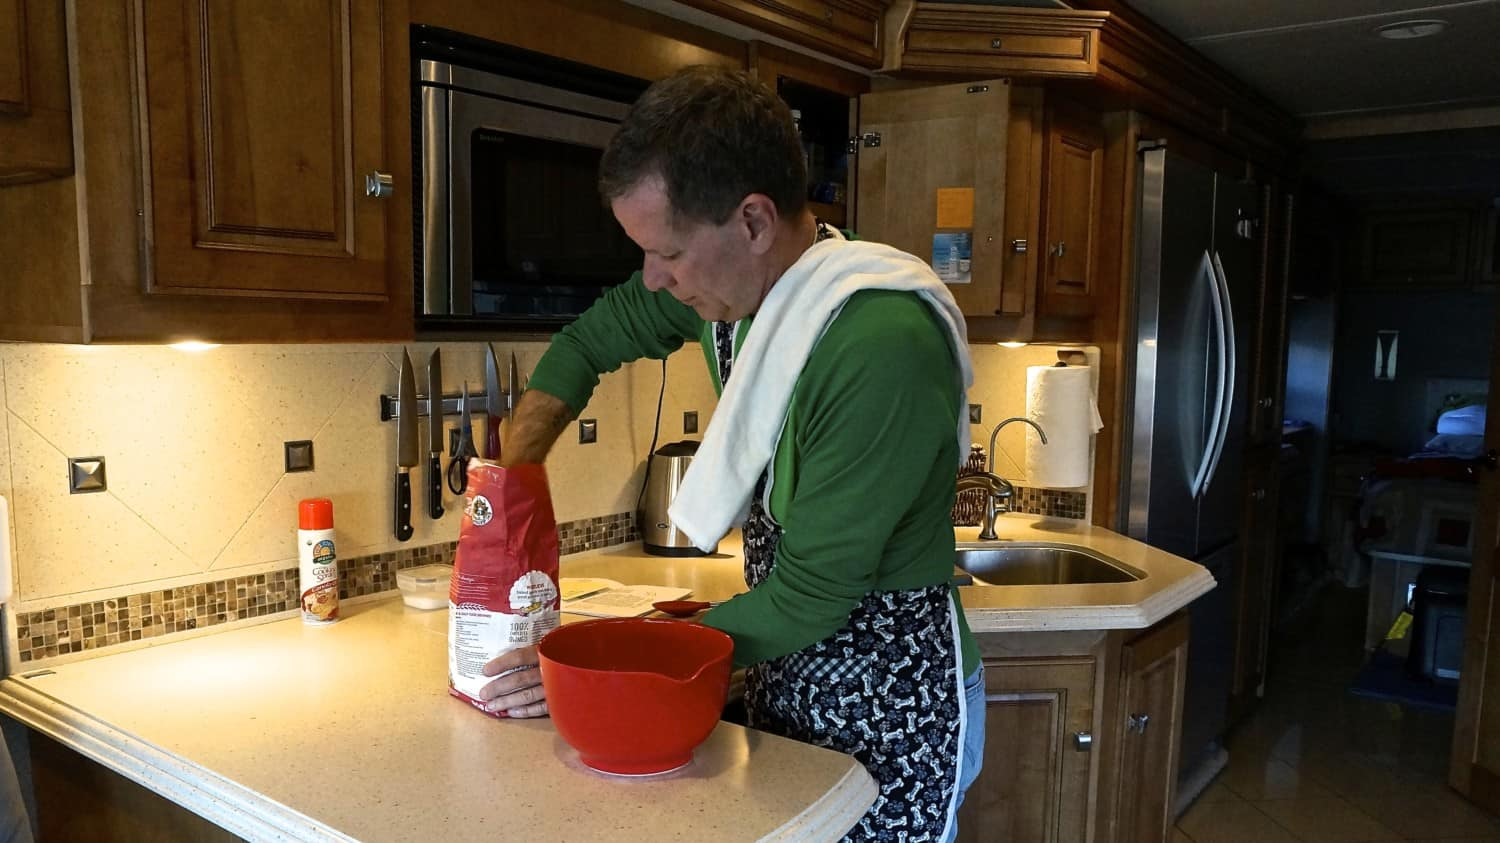 Making Pizza from Scratch in an RV Kitchen | GoPetFriendly.com